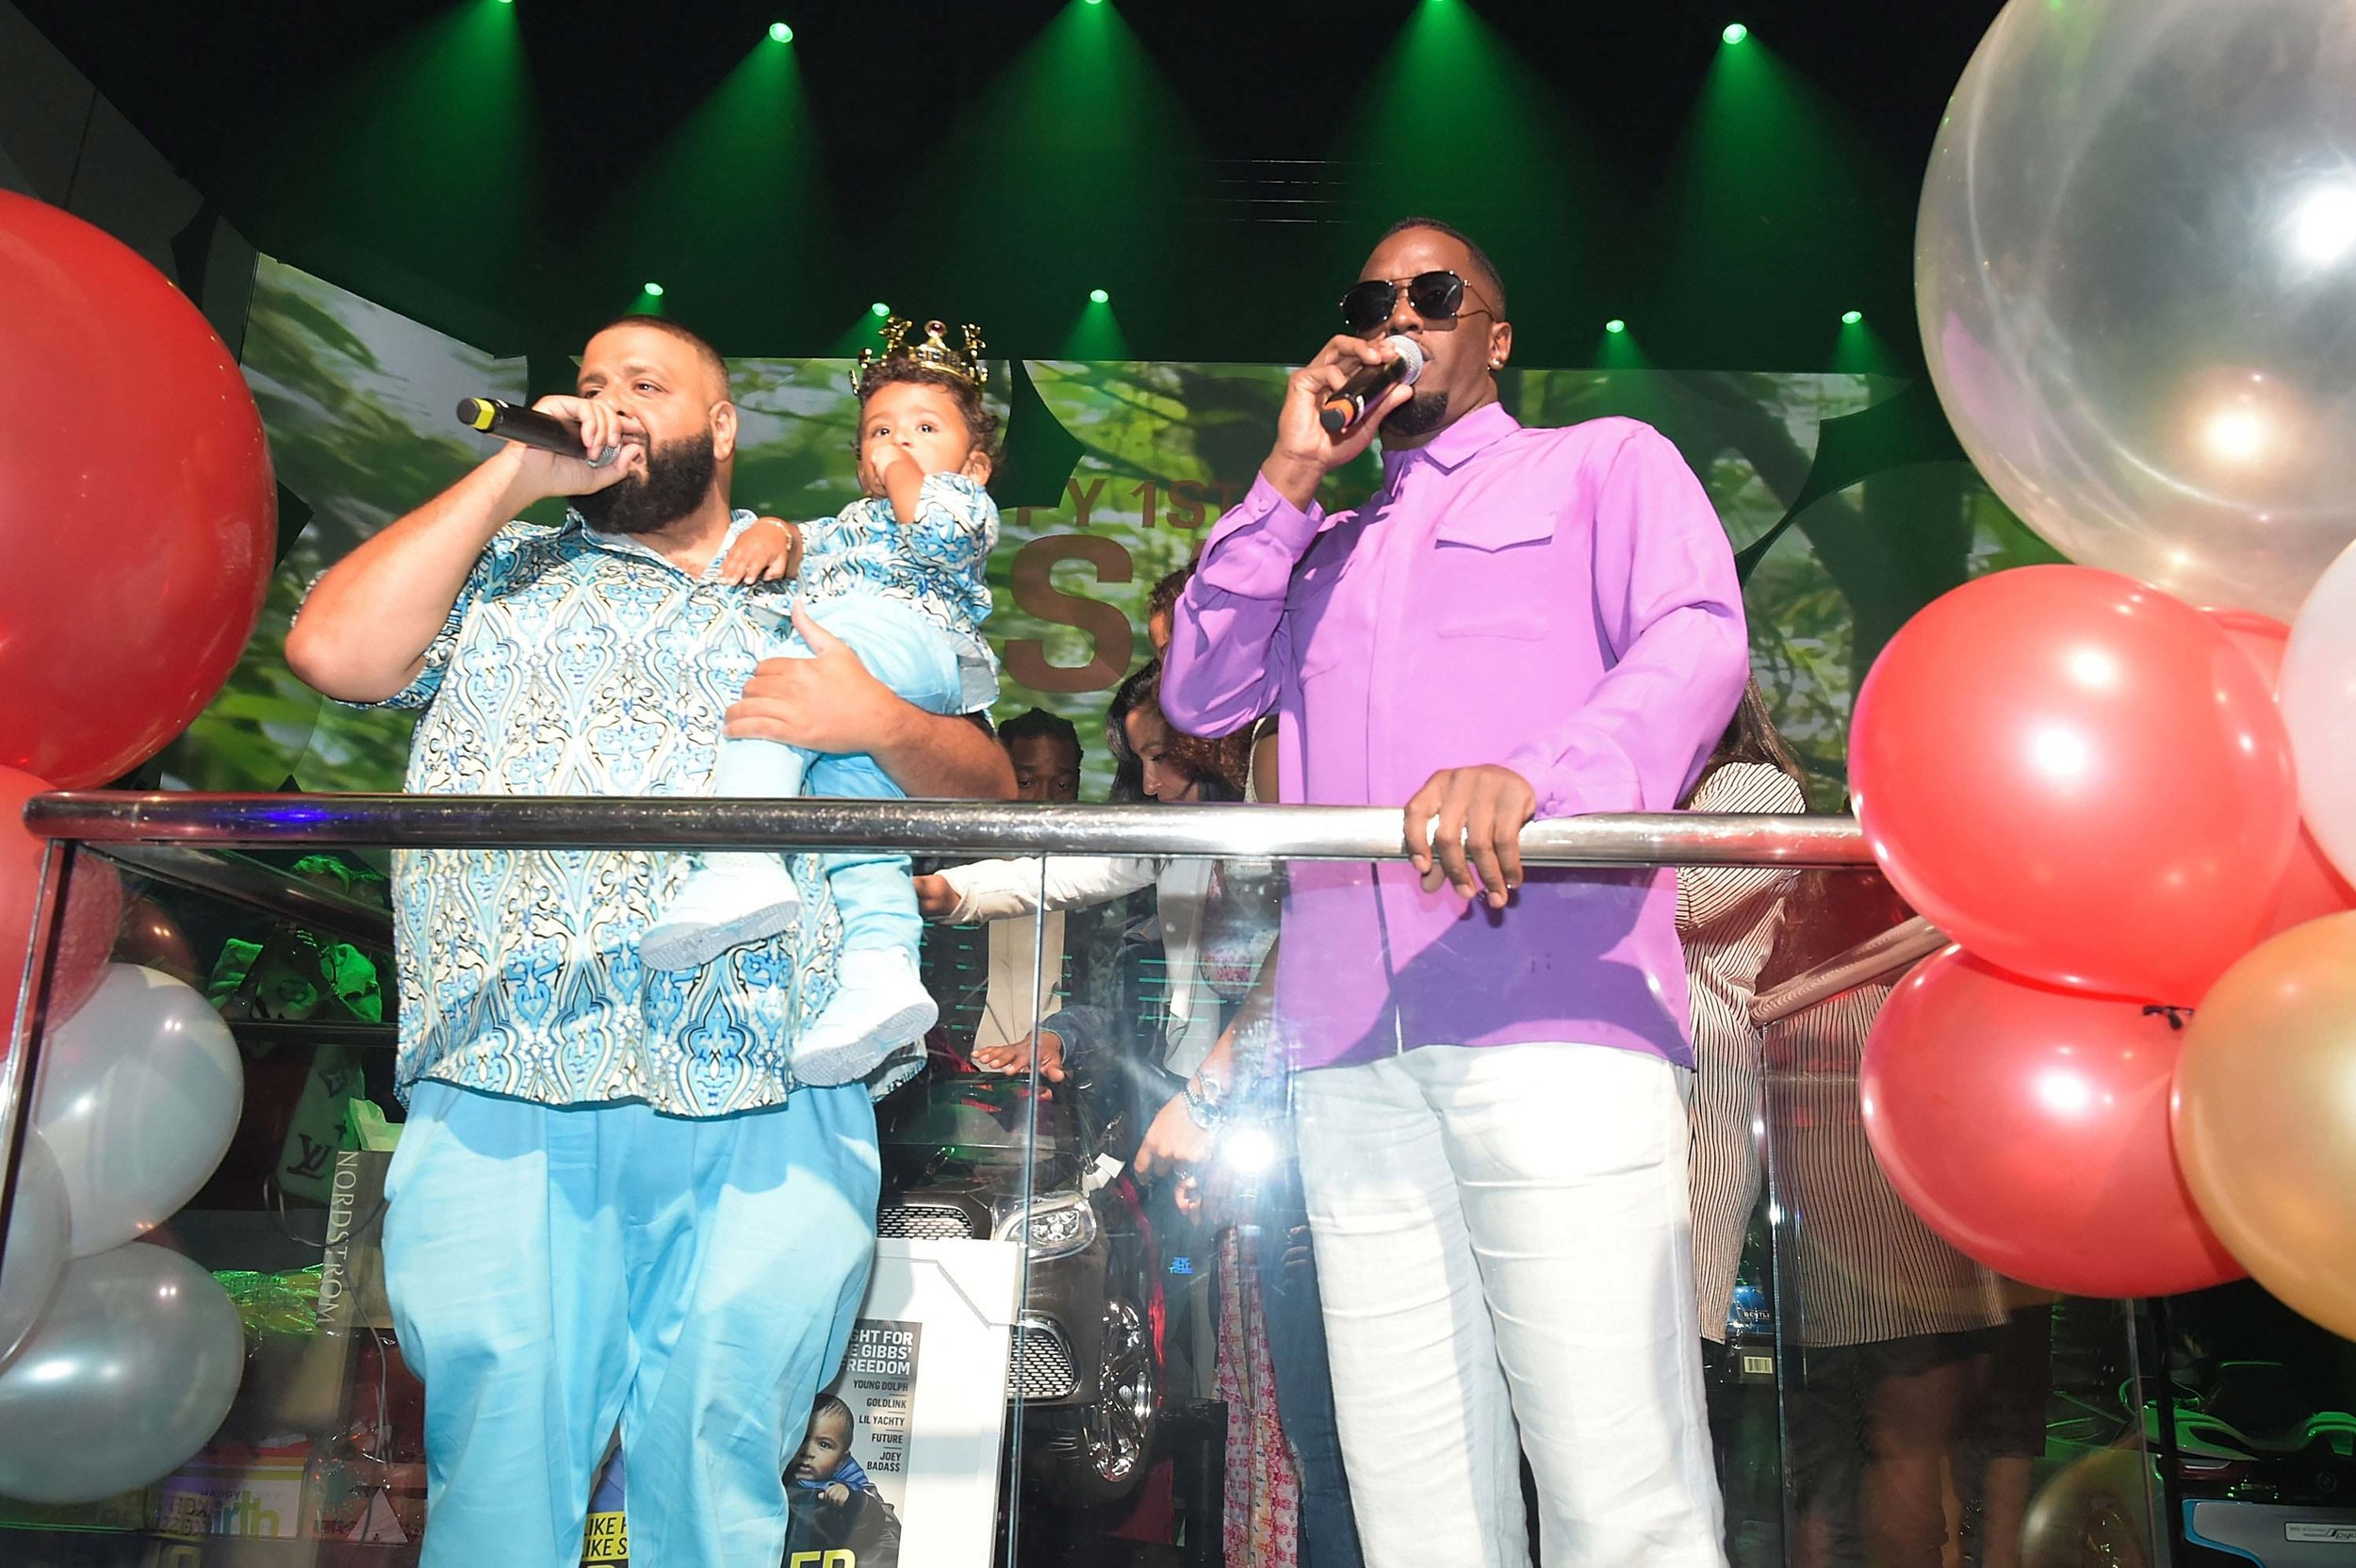 Asahd Went All Out for His First Birthday at LIV in Miami With DJ Khaled and Diddy